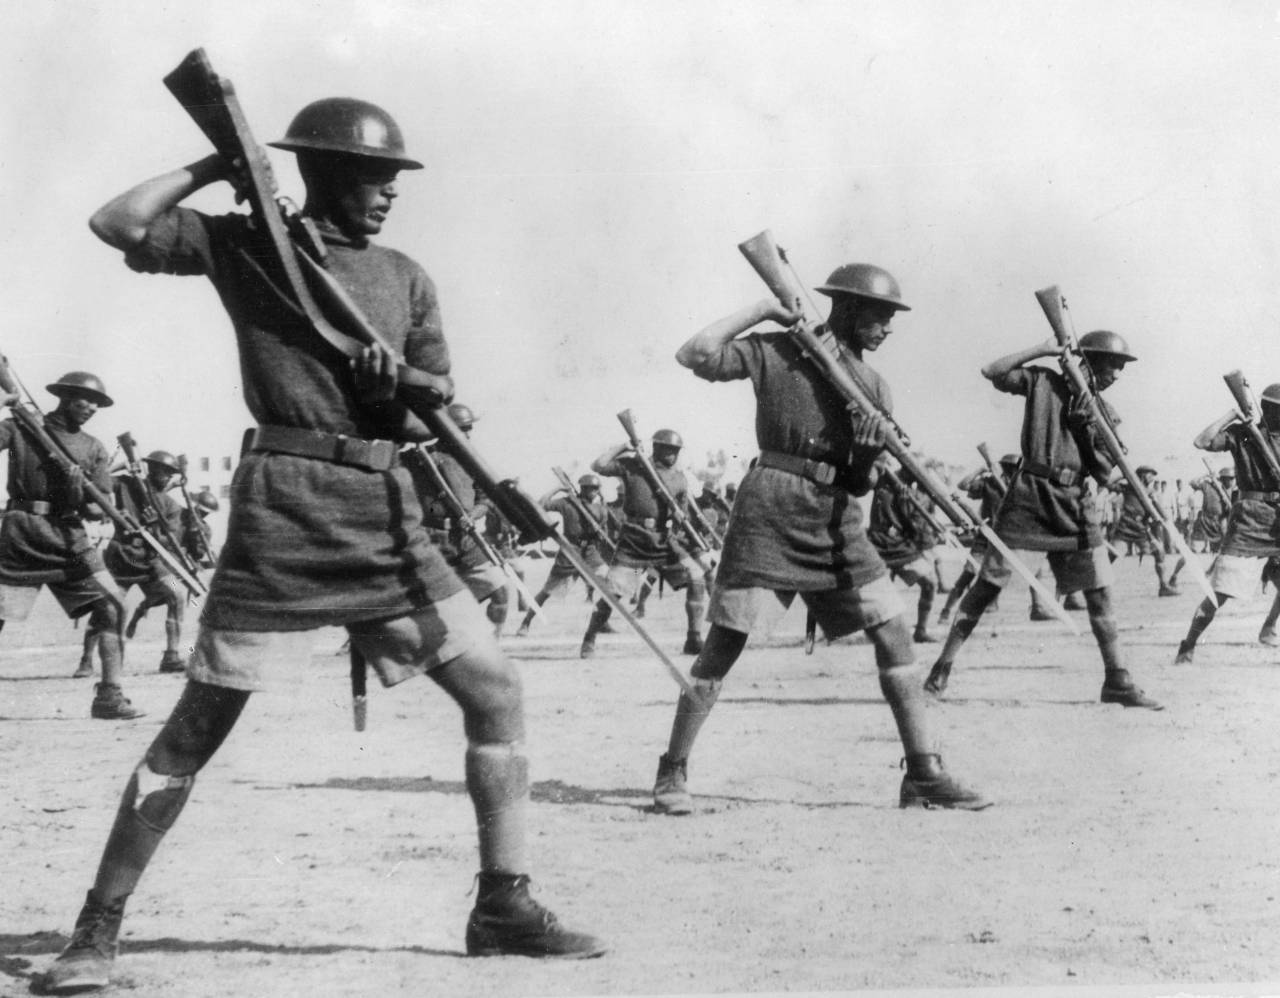 7th August 1940:  Egyptian troops on bayonet drill in their barracks in preparation for an attack by Italy.  (Photo by Keystone/Getty Images)